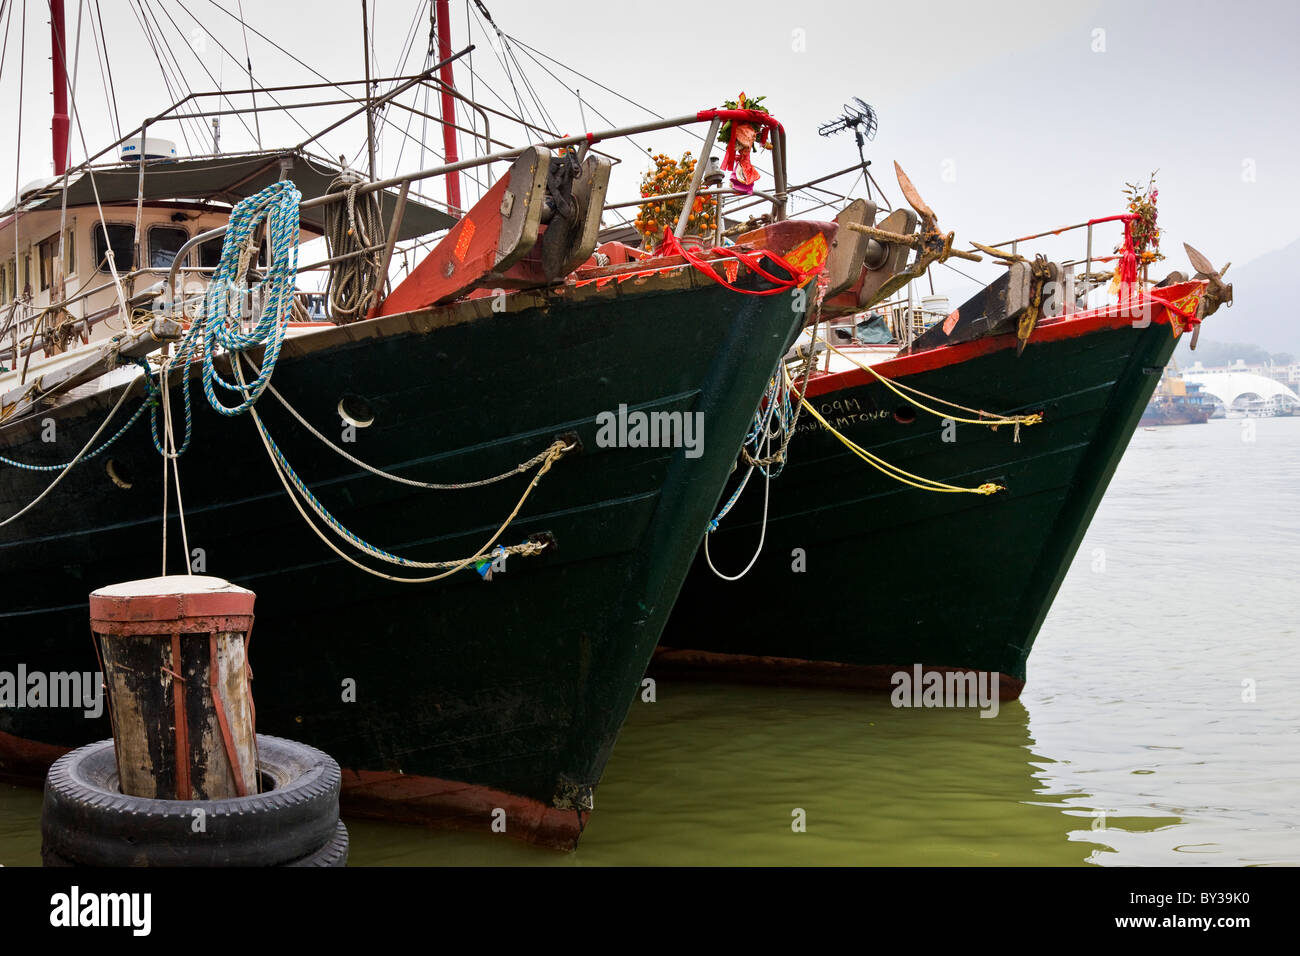 Fishing boats tied up in harbour Macau SAR People's Republic of China. JMH4161 - Stock Image